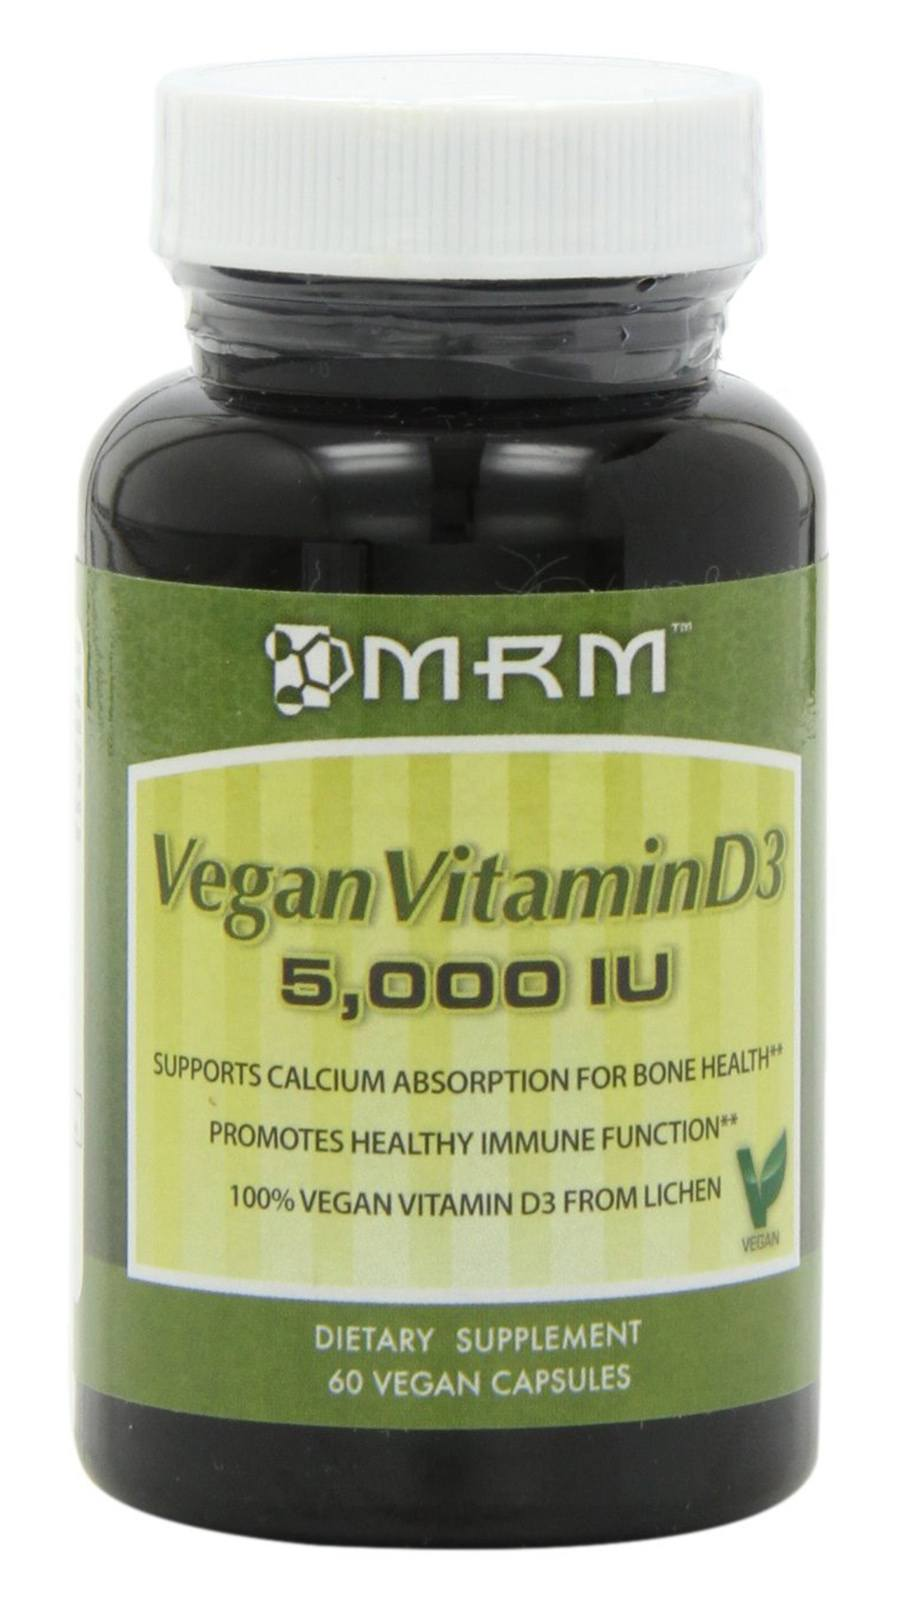 MRM Vegan Vitamin D3